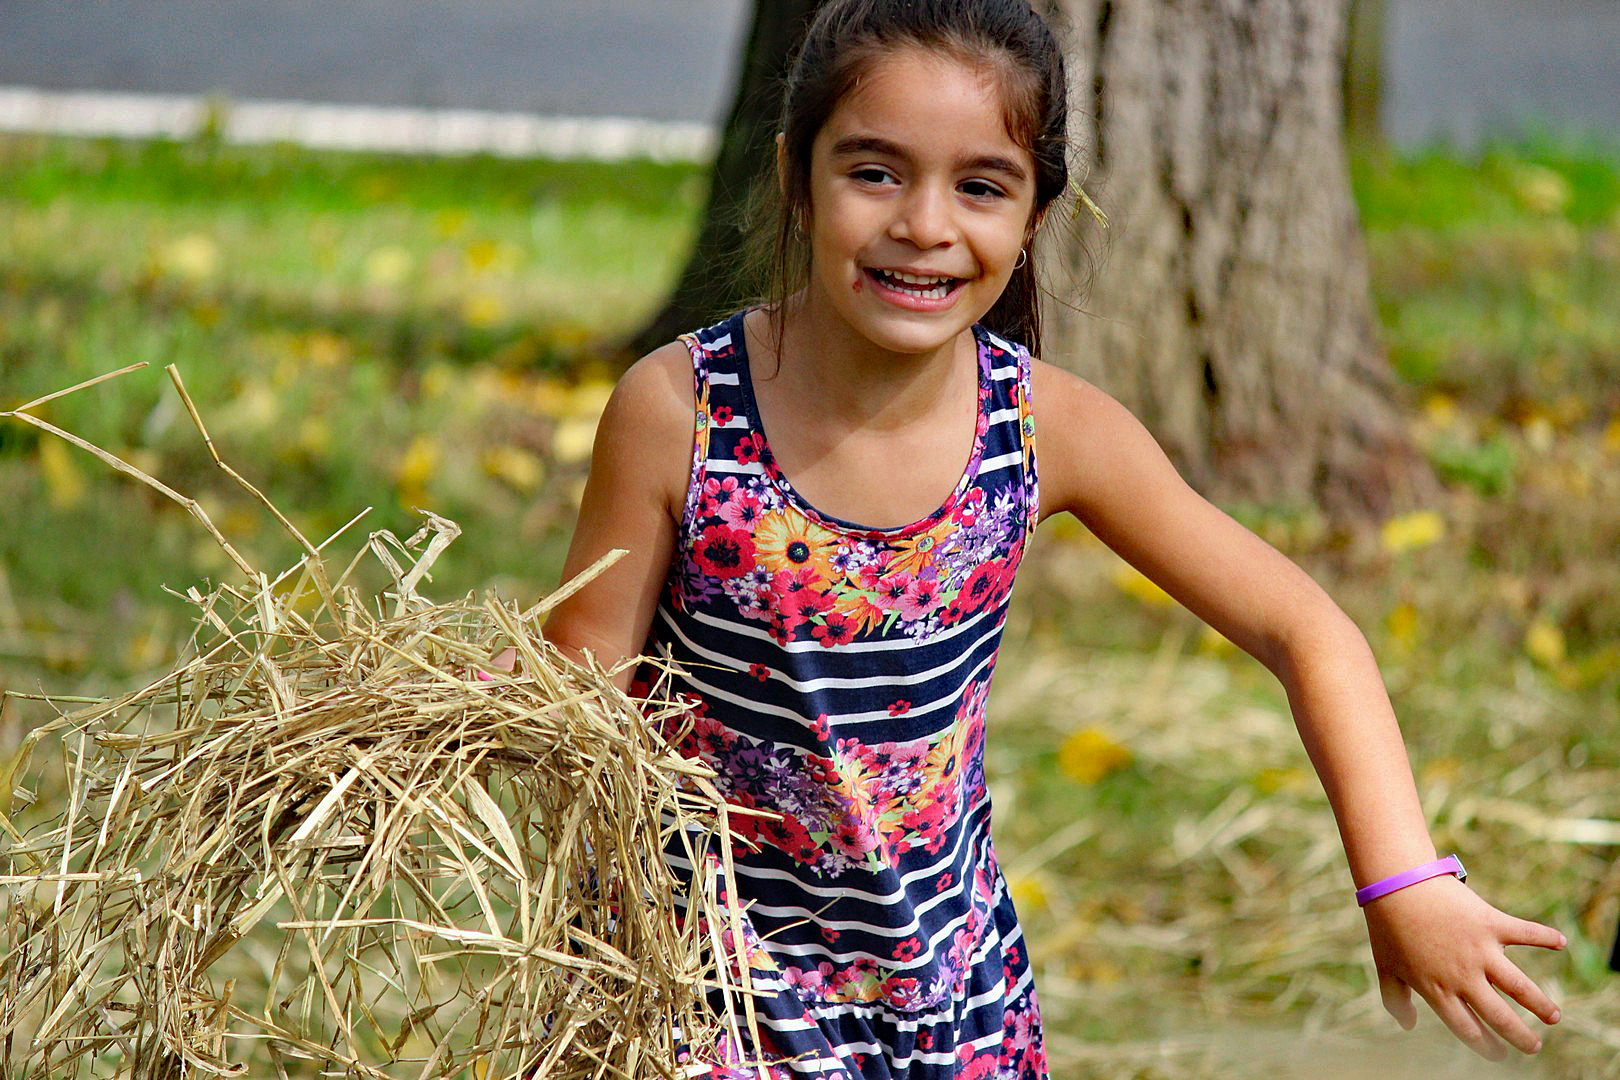 A young girl smiles as she gathers straw to stuff in a scarecrow